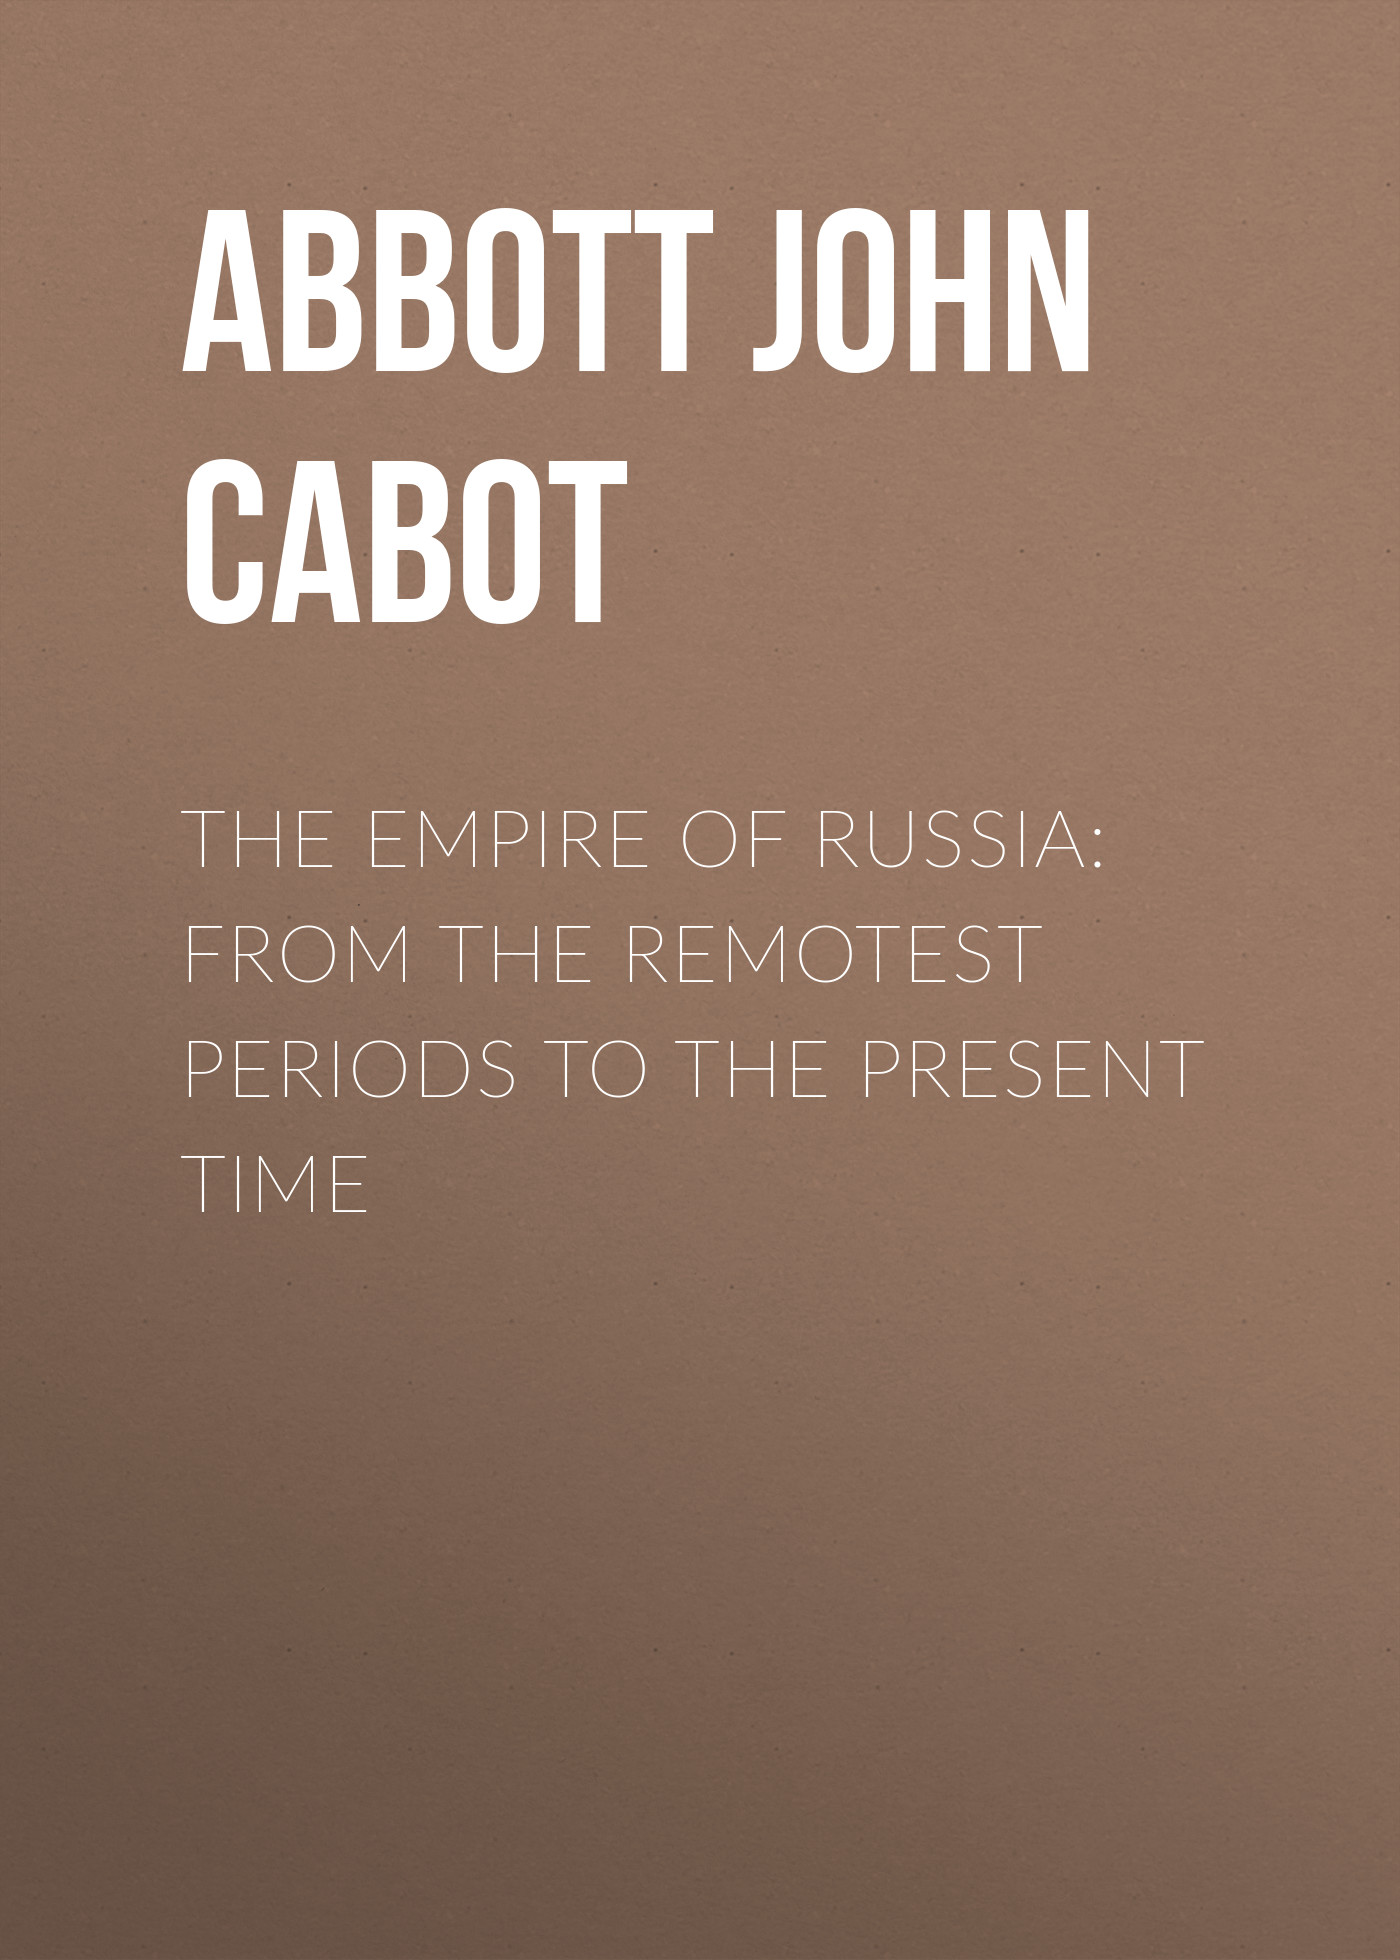 Abbott John Stevens Cabot The Empire of Russia: From the Remotest Periods to the Present Time john wilson index to the acts and proceedings of the general assembly of the church of scotland from the revolution to the present time